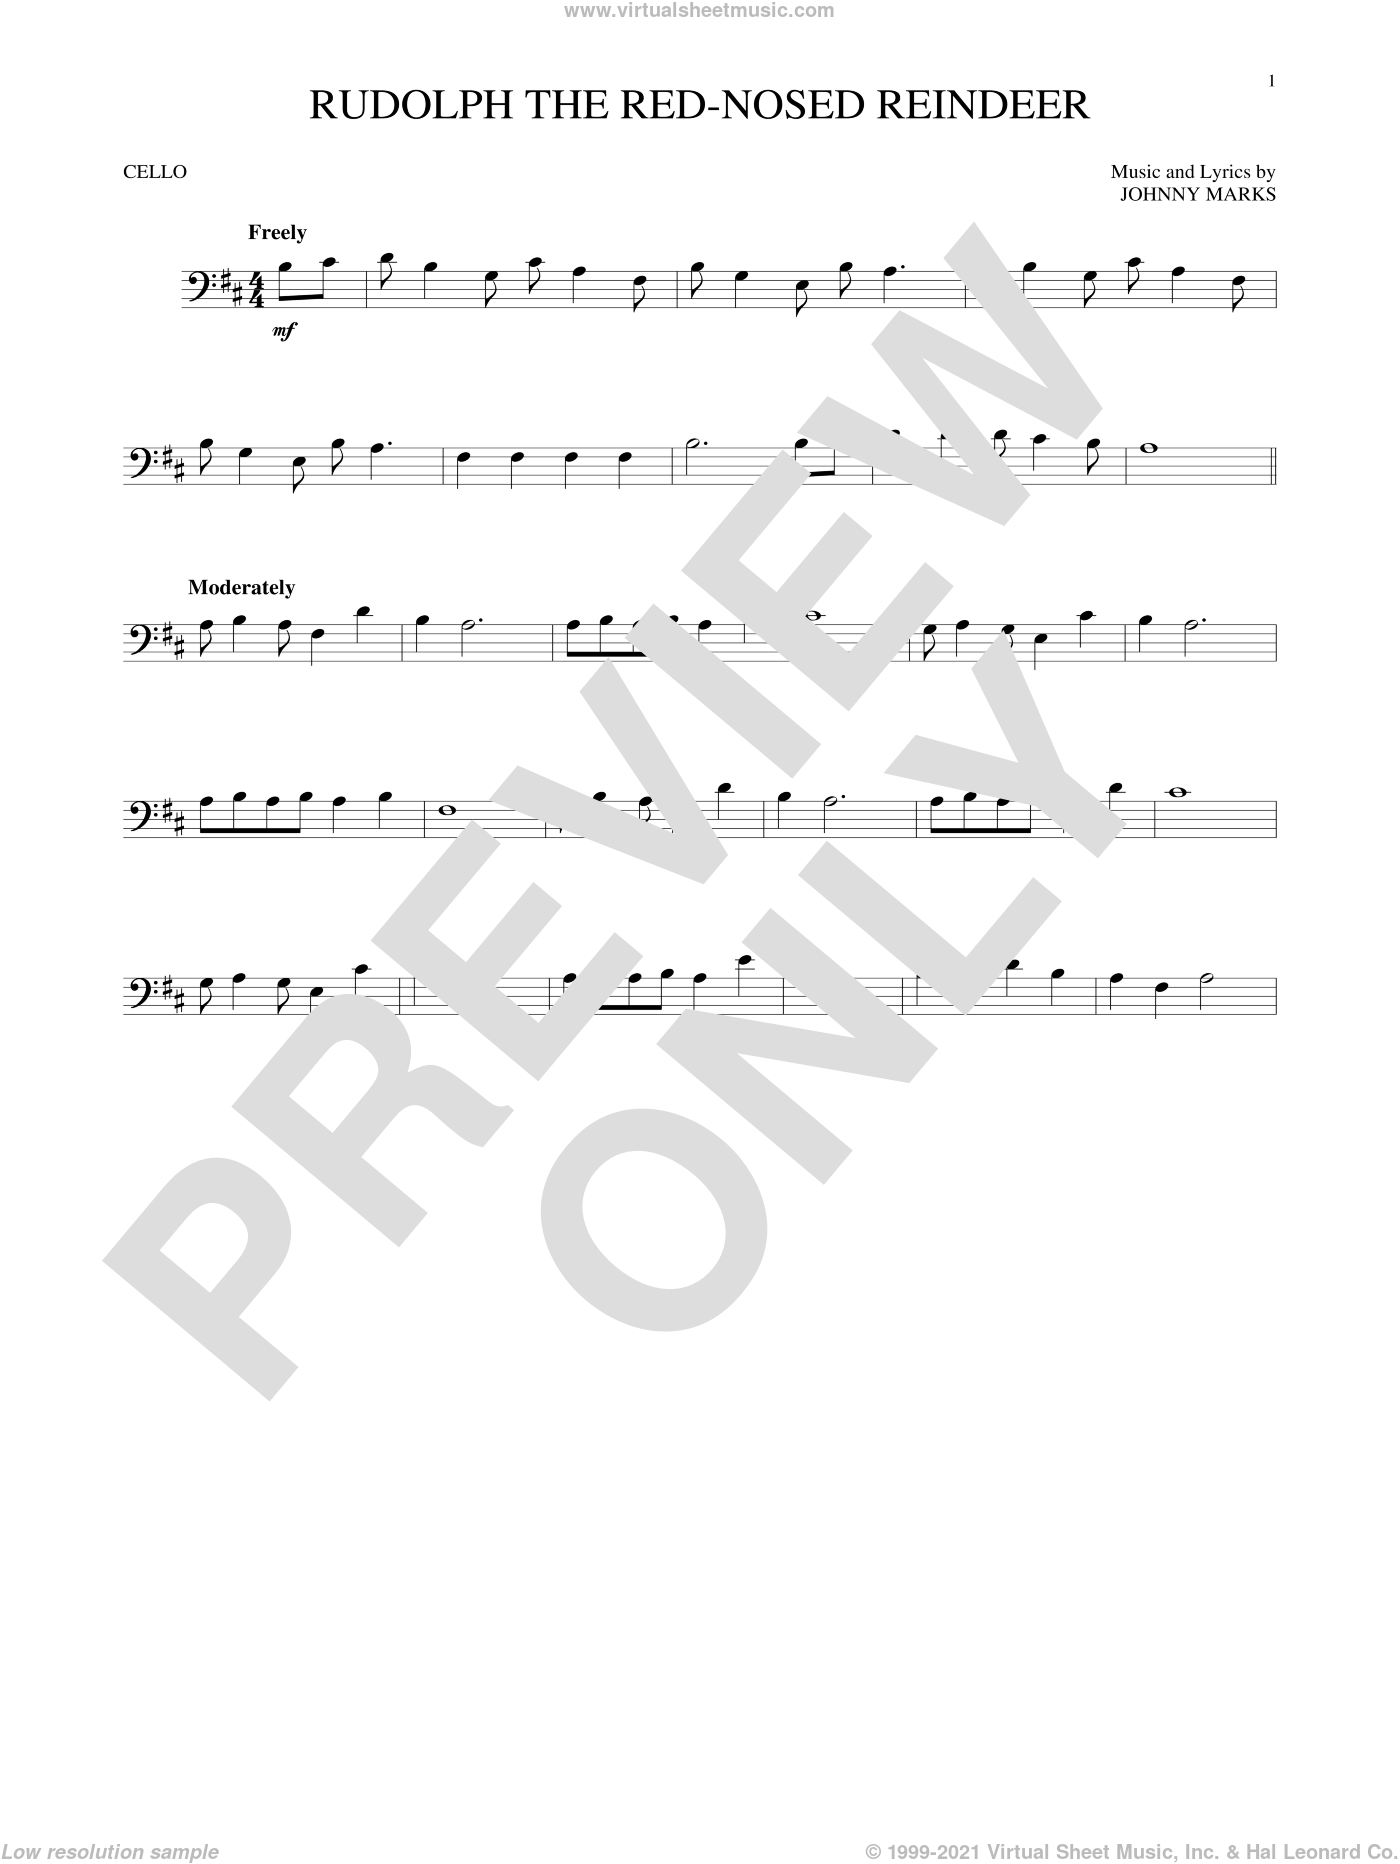 Rudolph The Red-Nosed Reindeer sheet music for cello solo by Johnny Marks and John Denver, intermediate skill level